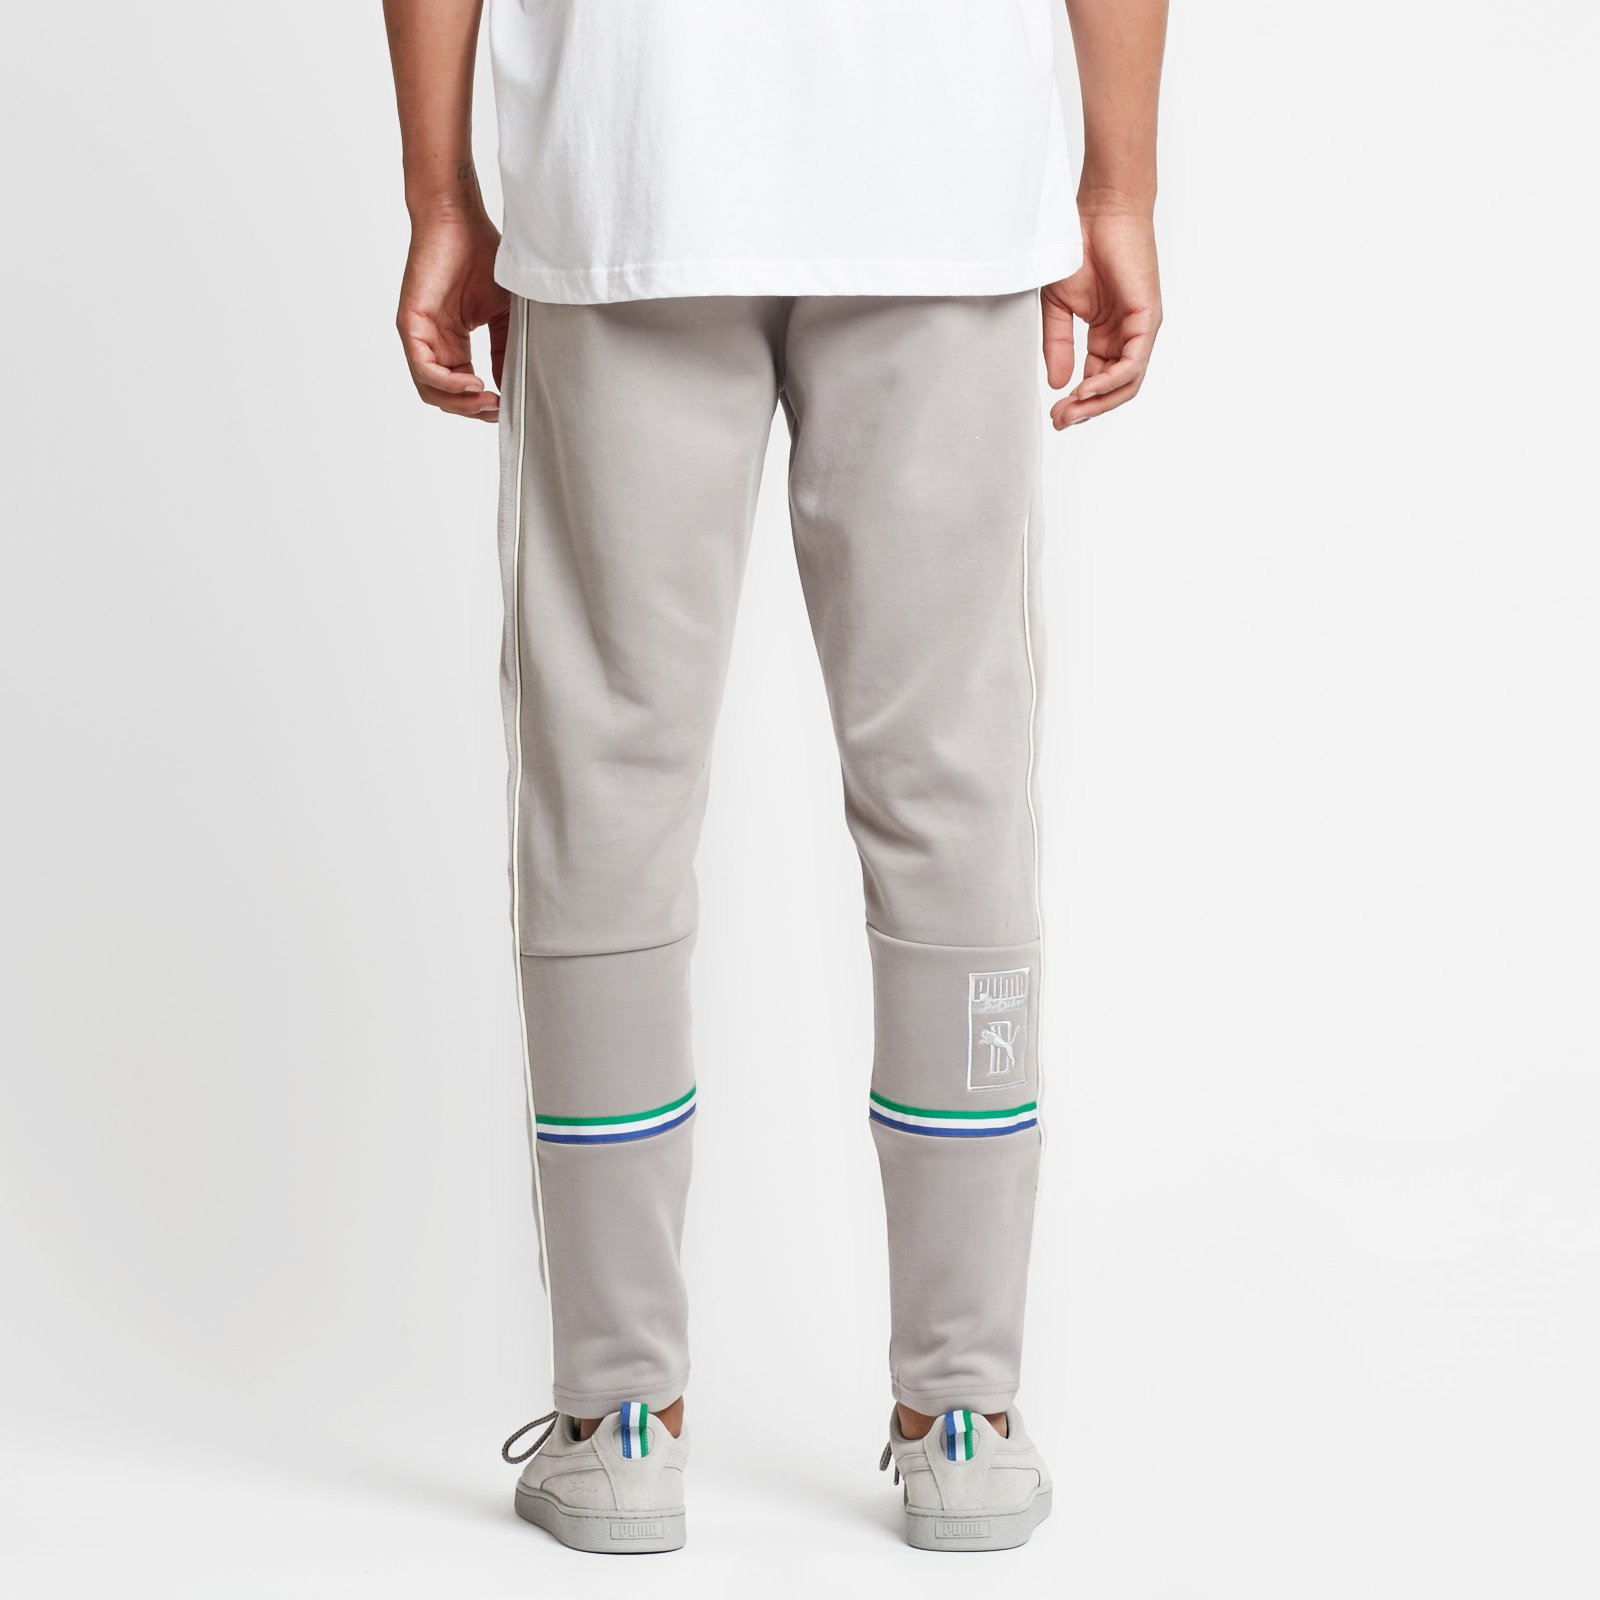 b8d3203bf21f Puma T7 Pants x Big Sean - 575927-12 - Sneakersnstuff